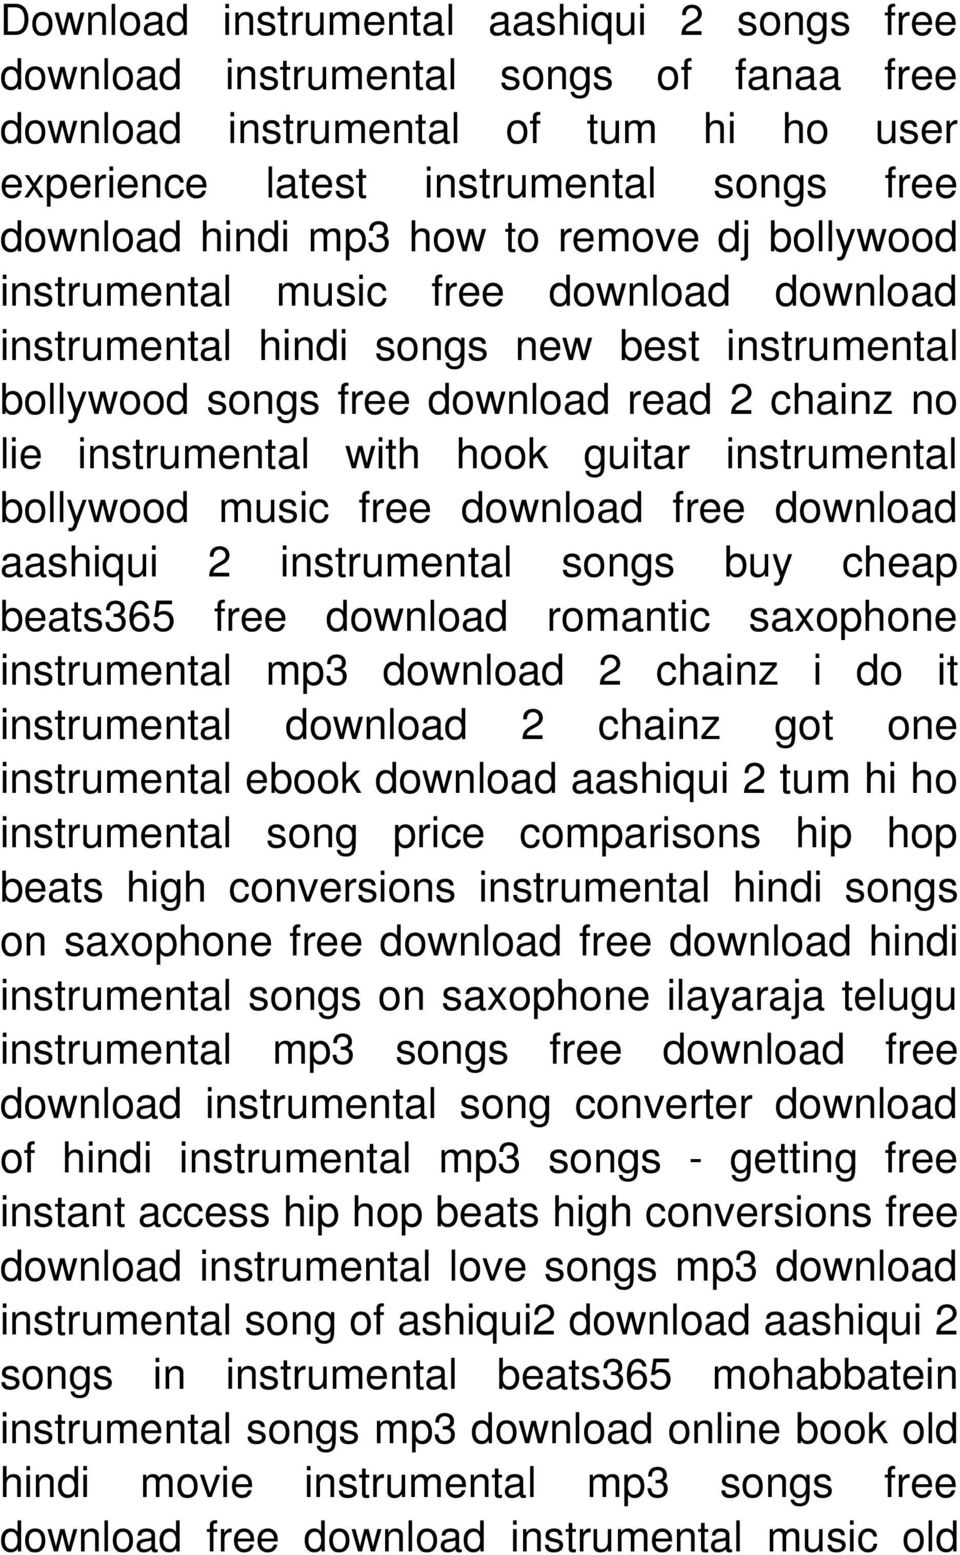 instrumental bollywood music free download free download aashiqui 2 instrumental songs buy cheap beats365 free download romantic saxophone instrumental mp3 download 2 chainz i do it instrumental